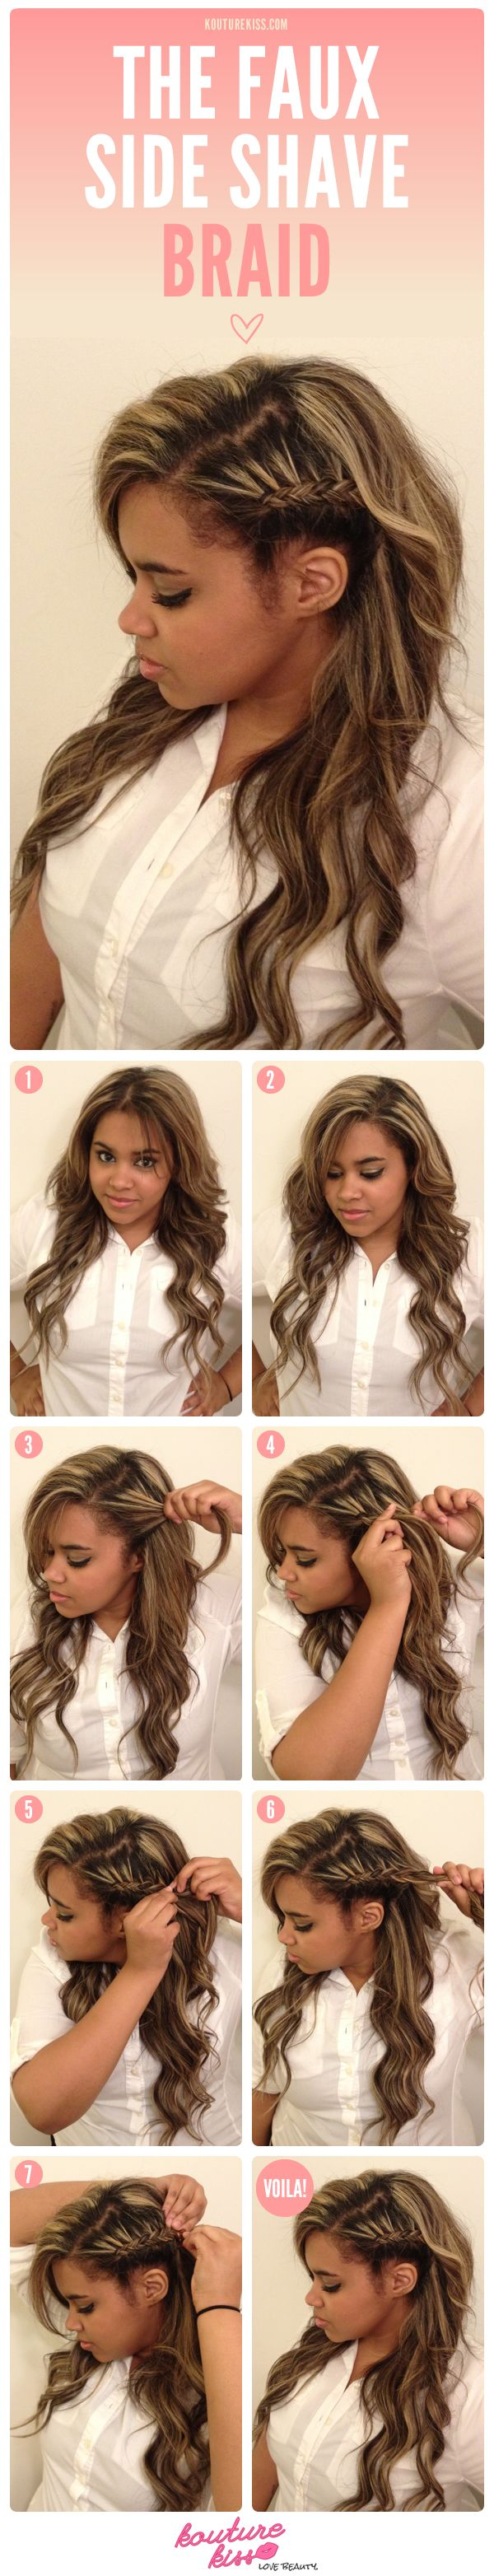 """The Faux Side Shave Braid' - Get the edgy look without the long term commitment of shaving your hair! #Hair #Style #DIY"